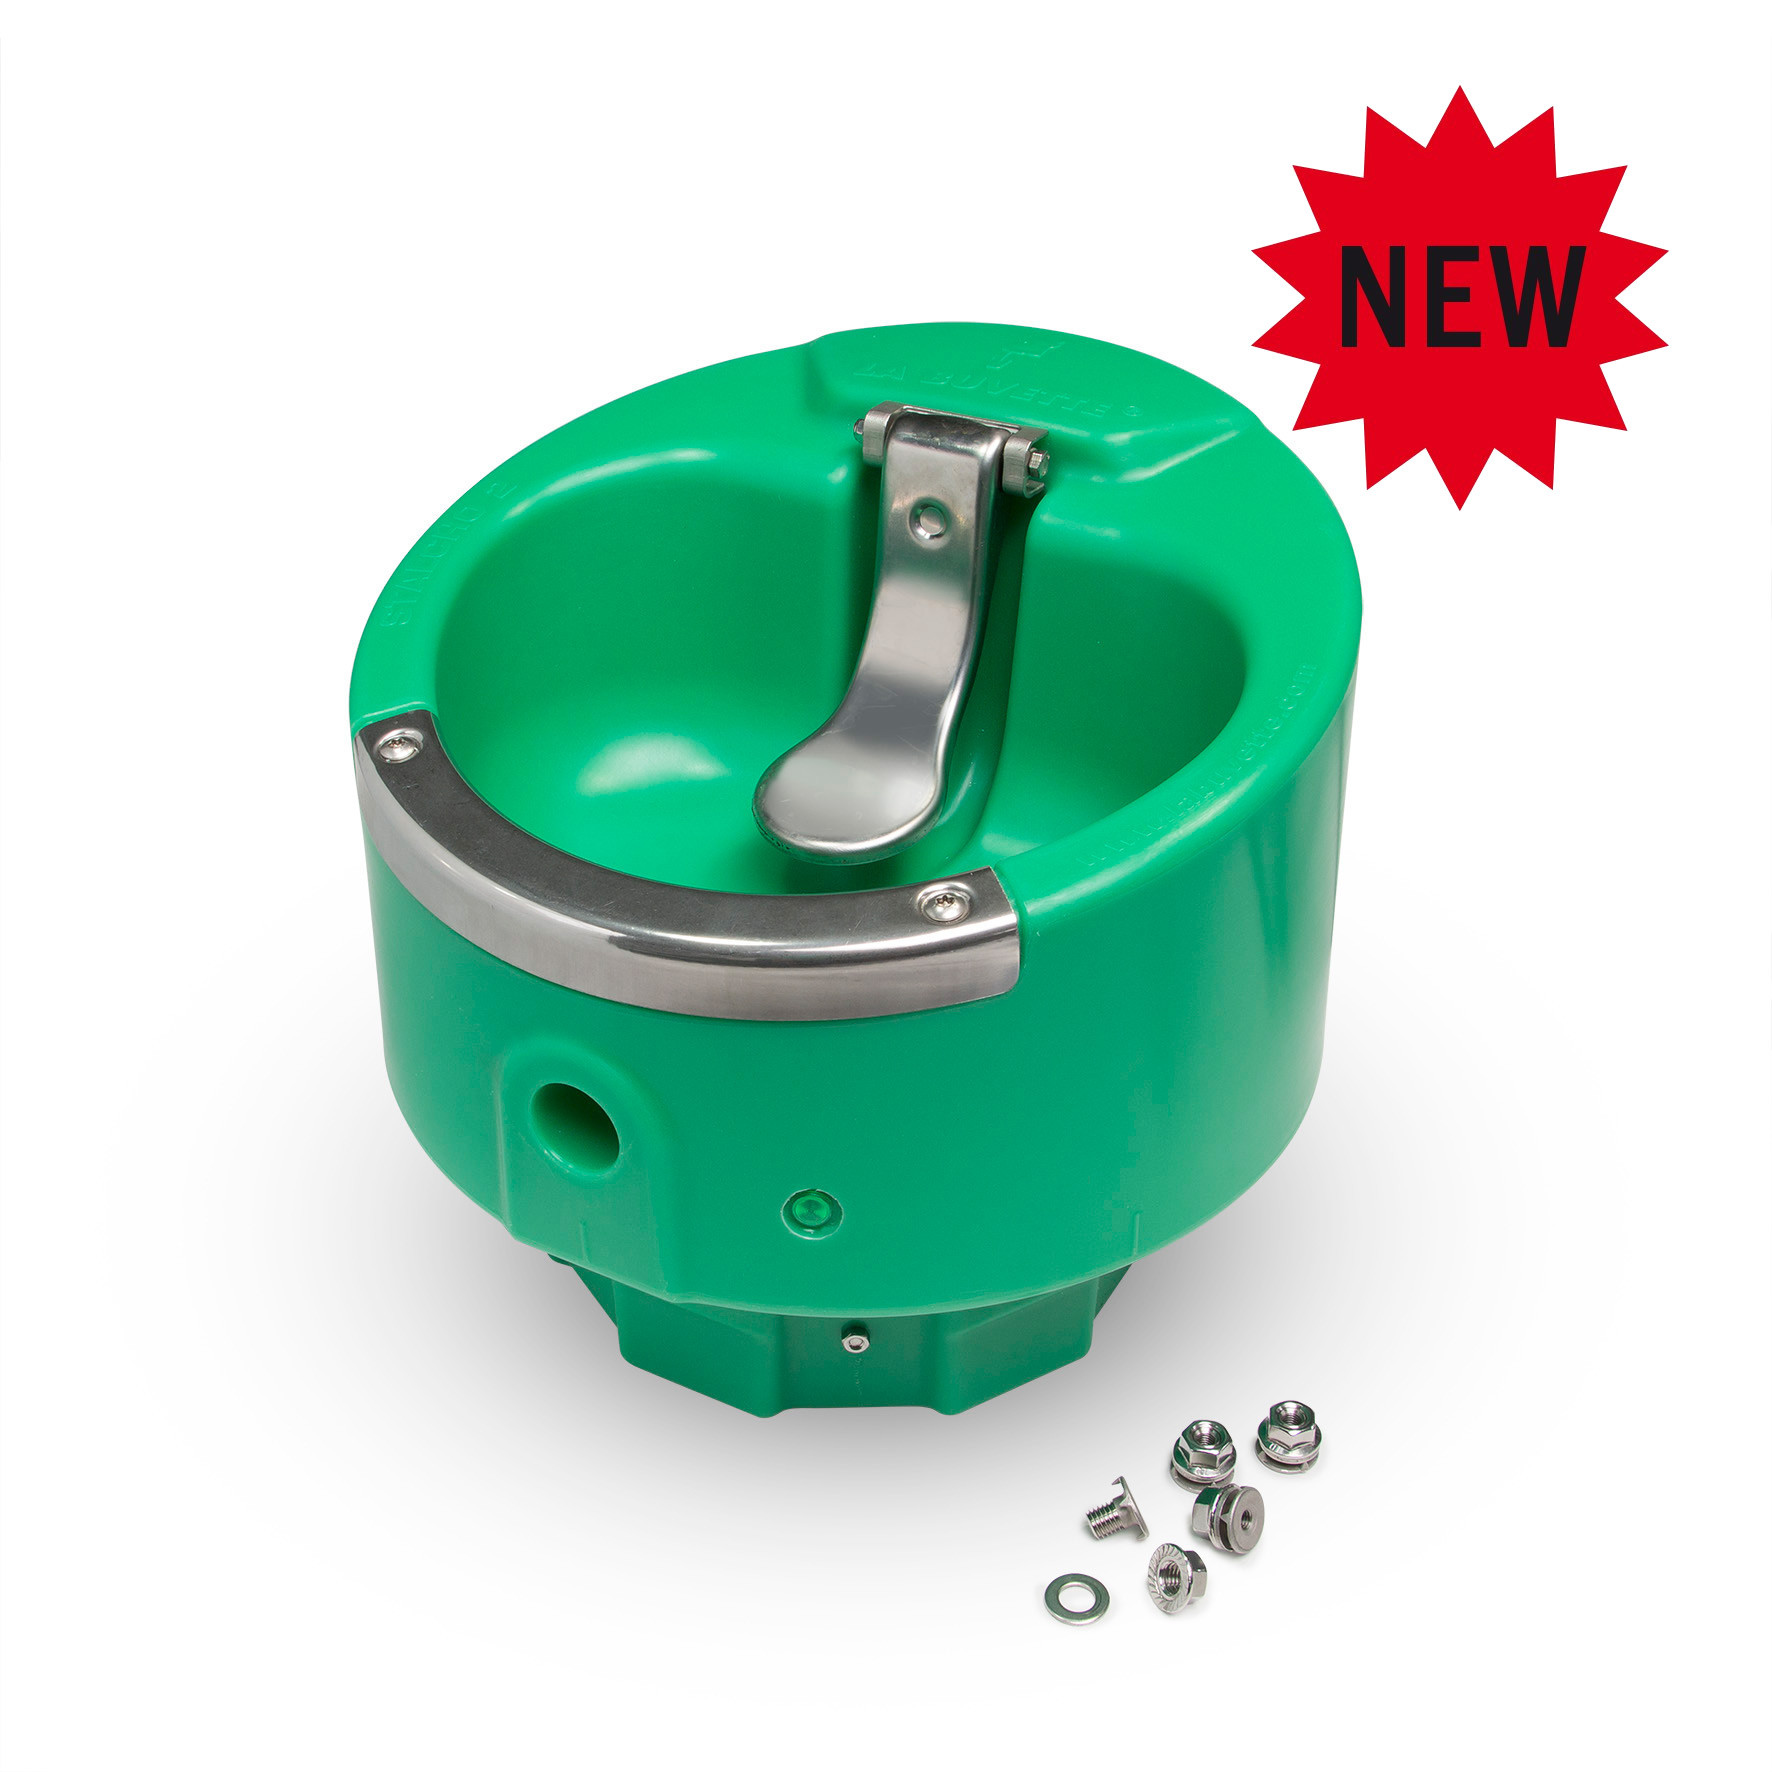 NEW Frost-free drinking bowl with paddle valve STALCHO2